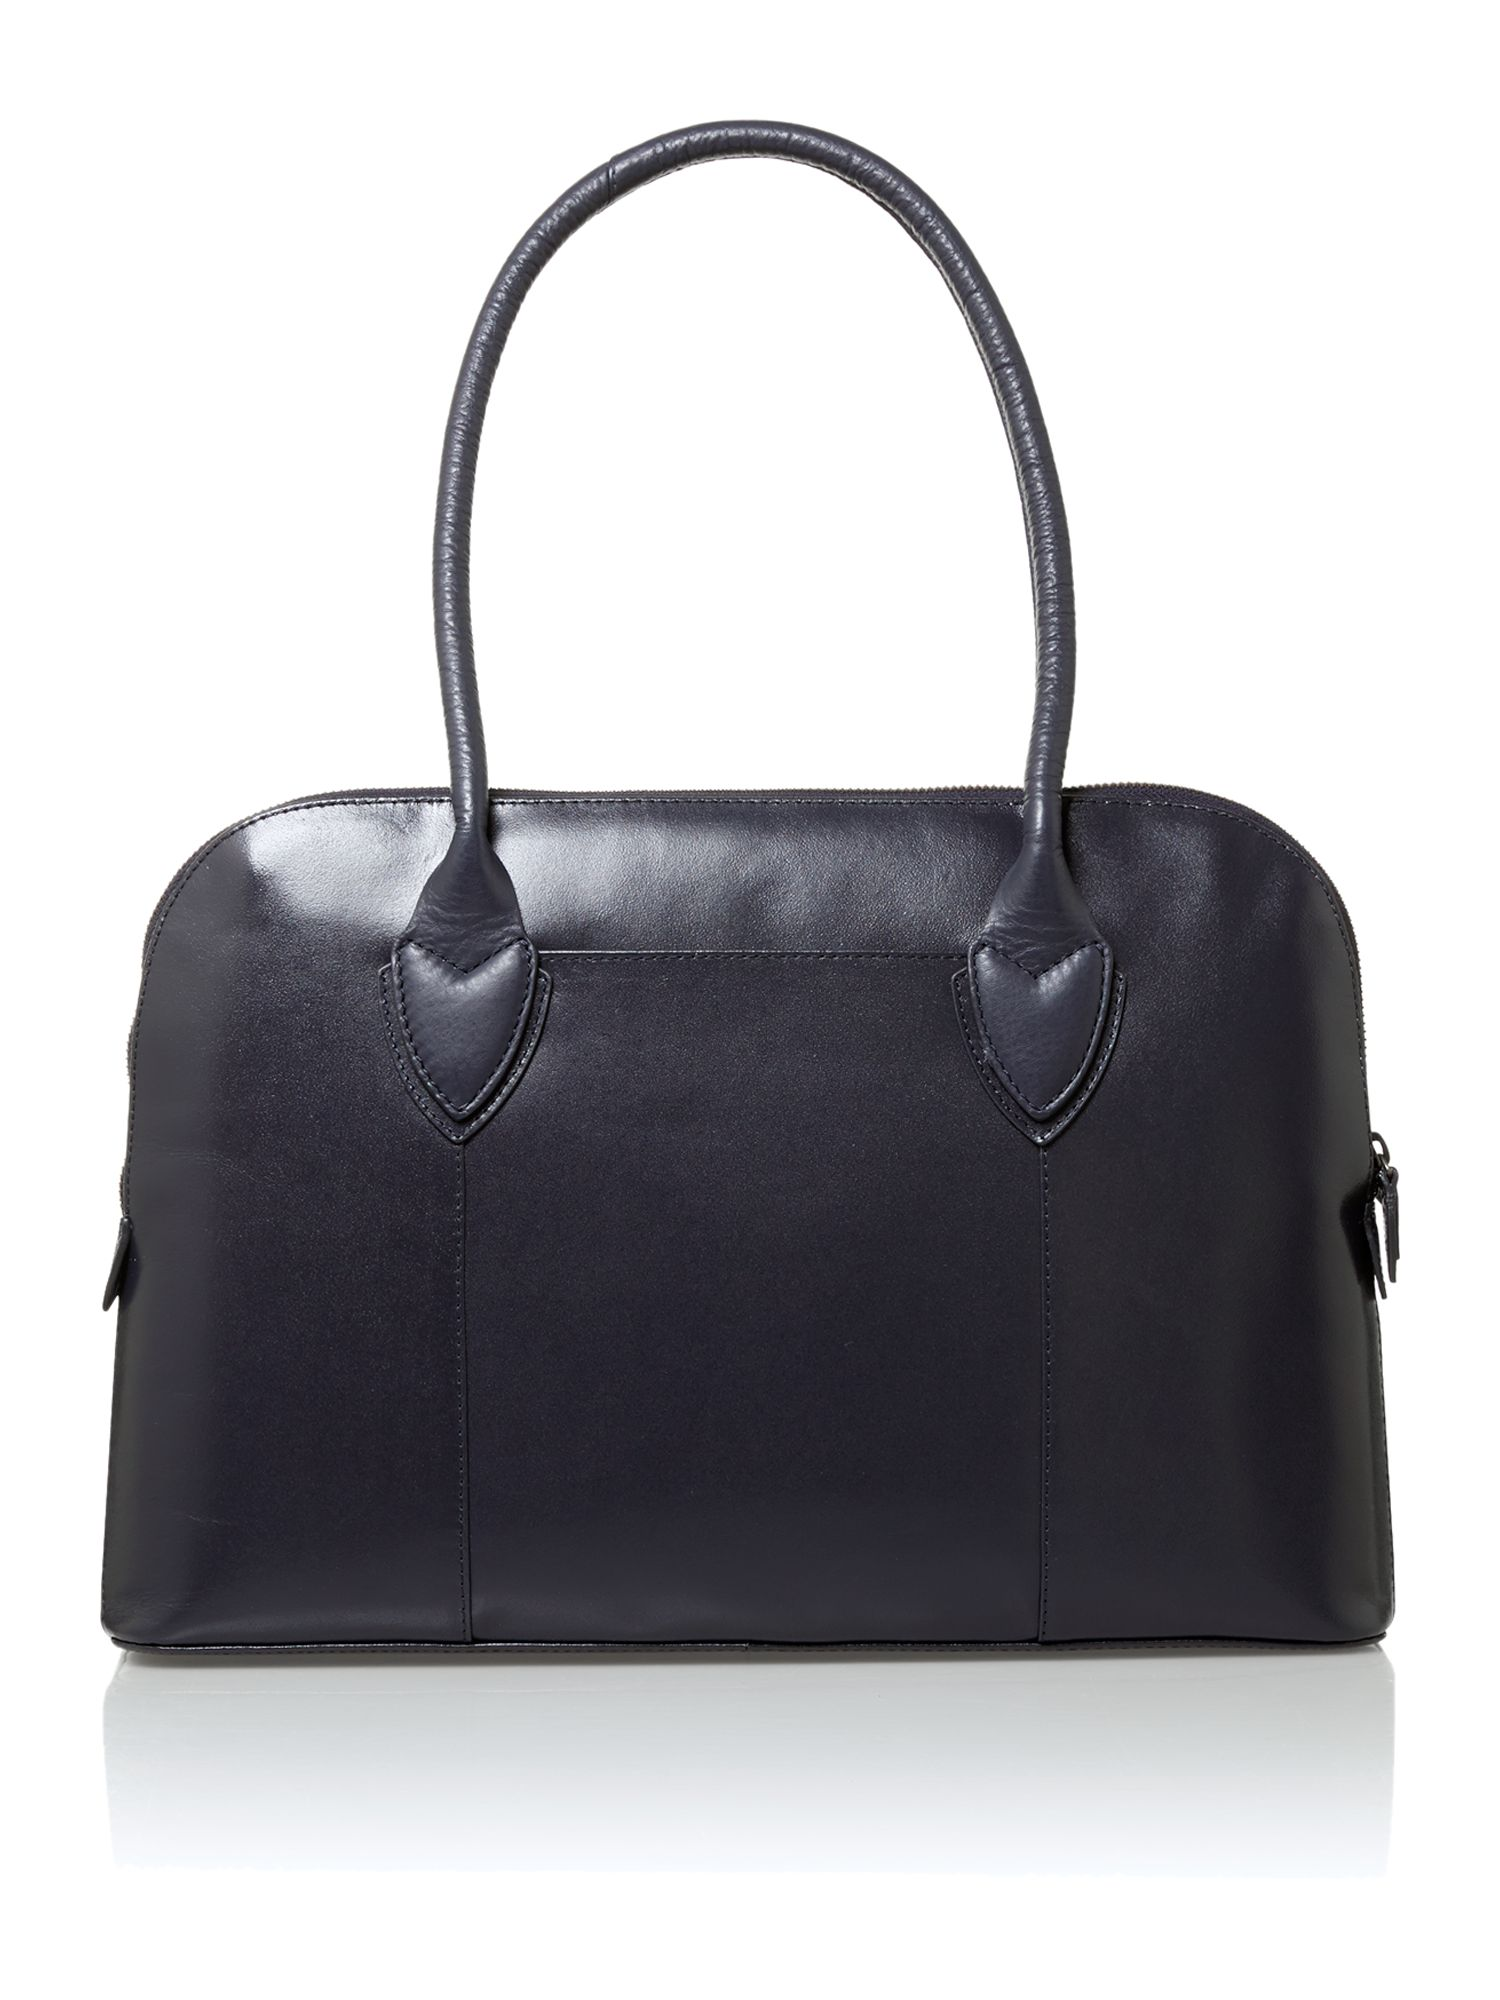 Aldgate fig navy large tote bag